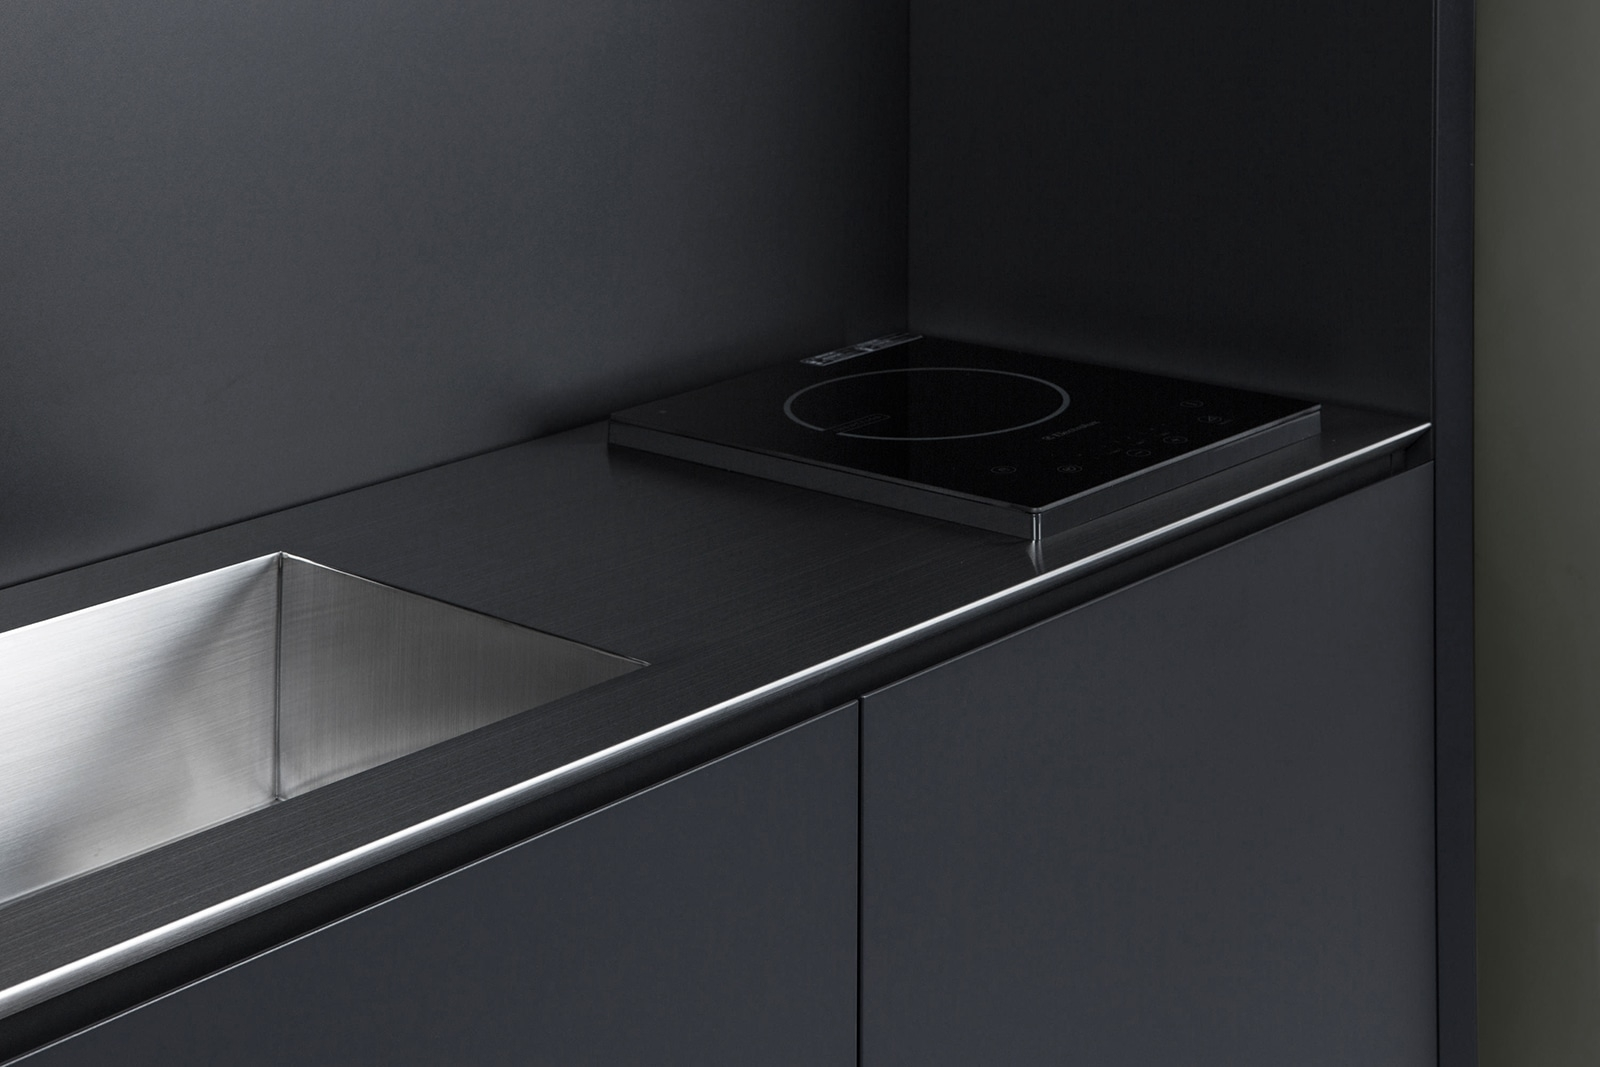 space saving minimalist kitchen - barenbrug | ello